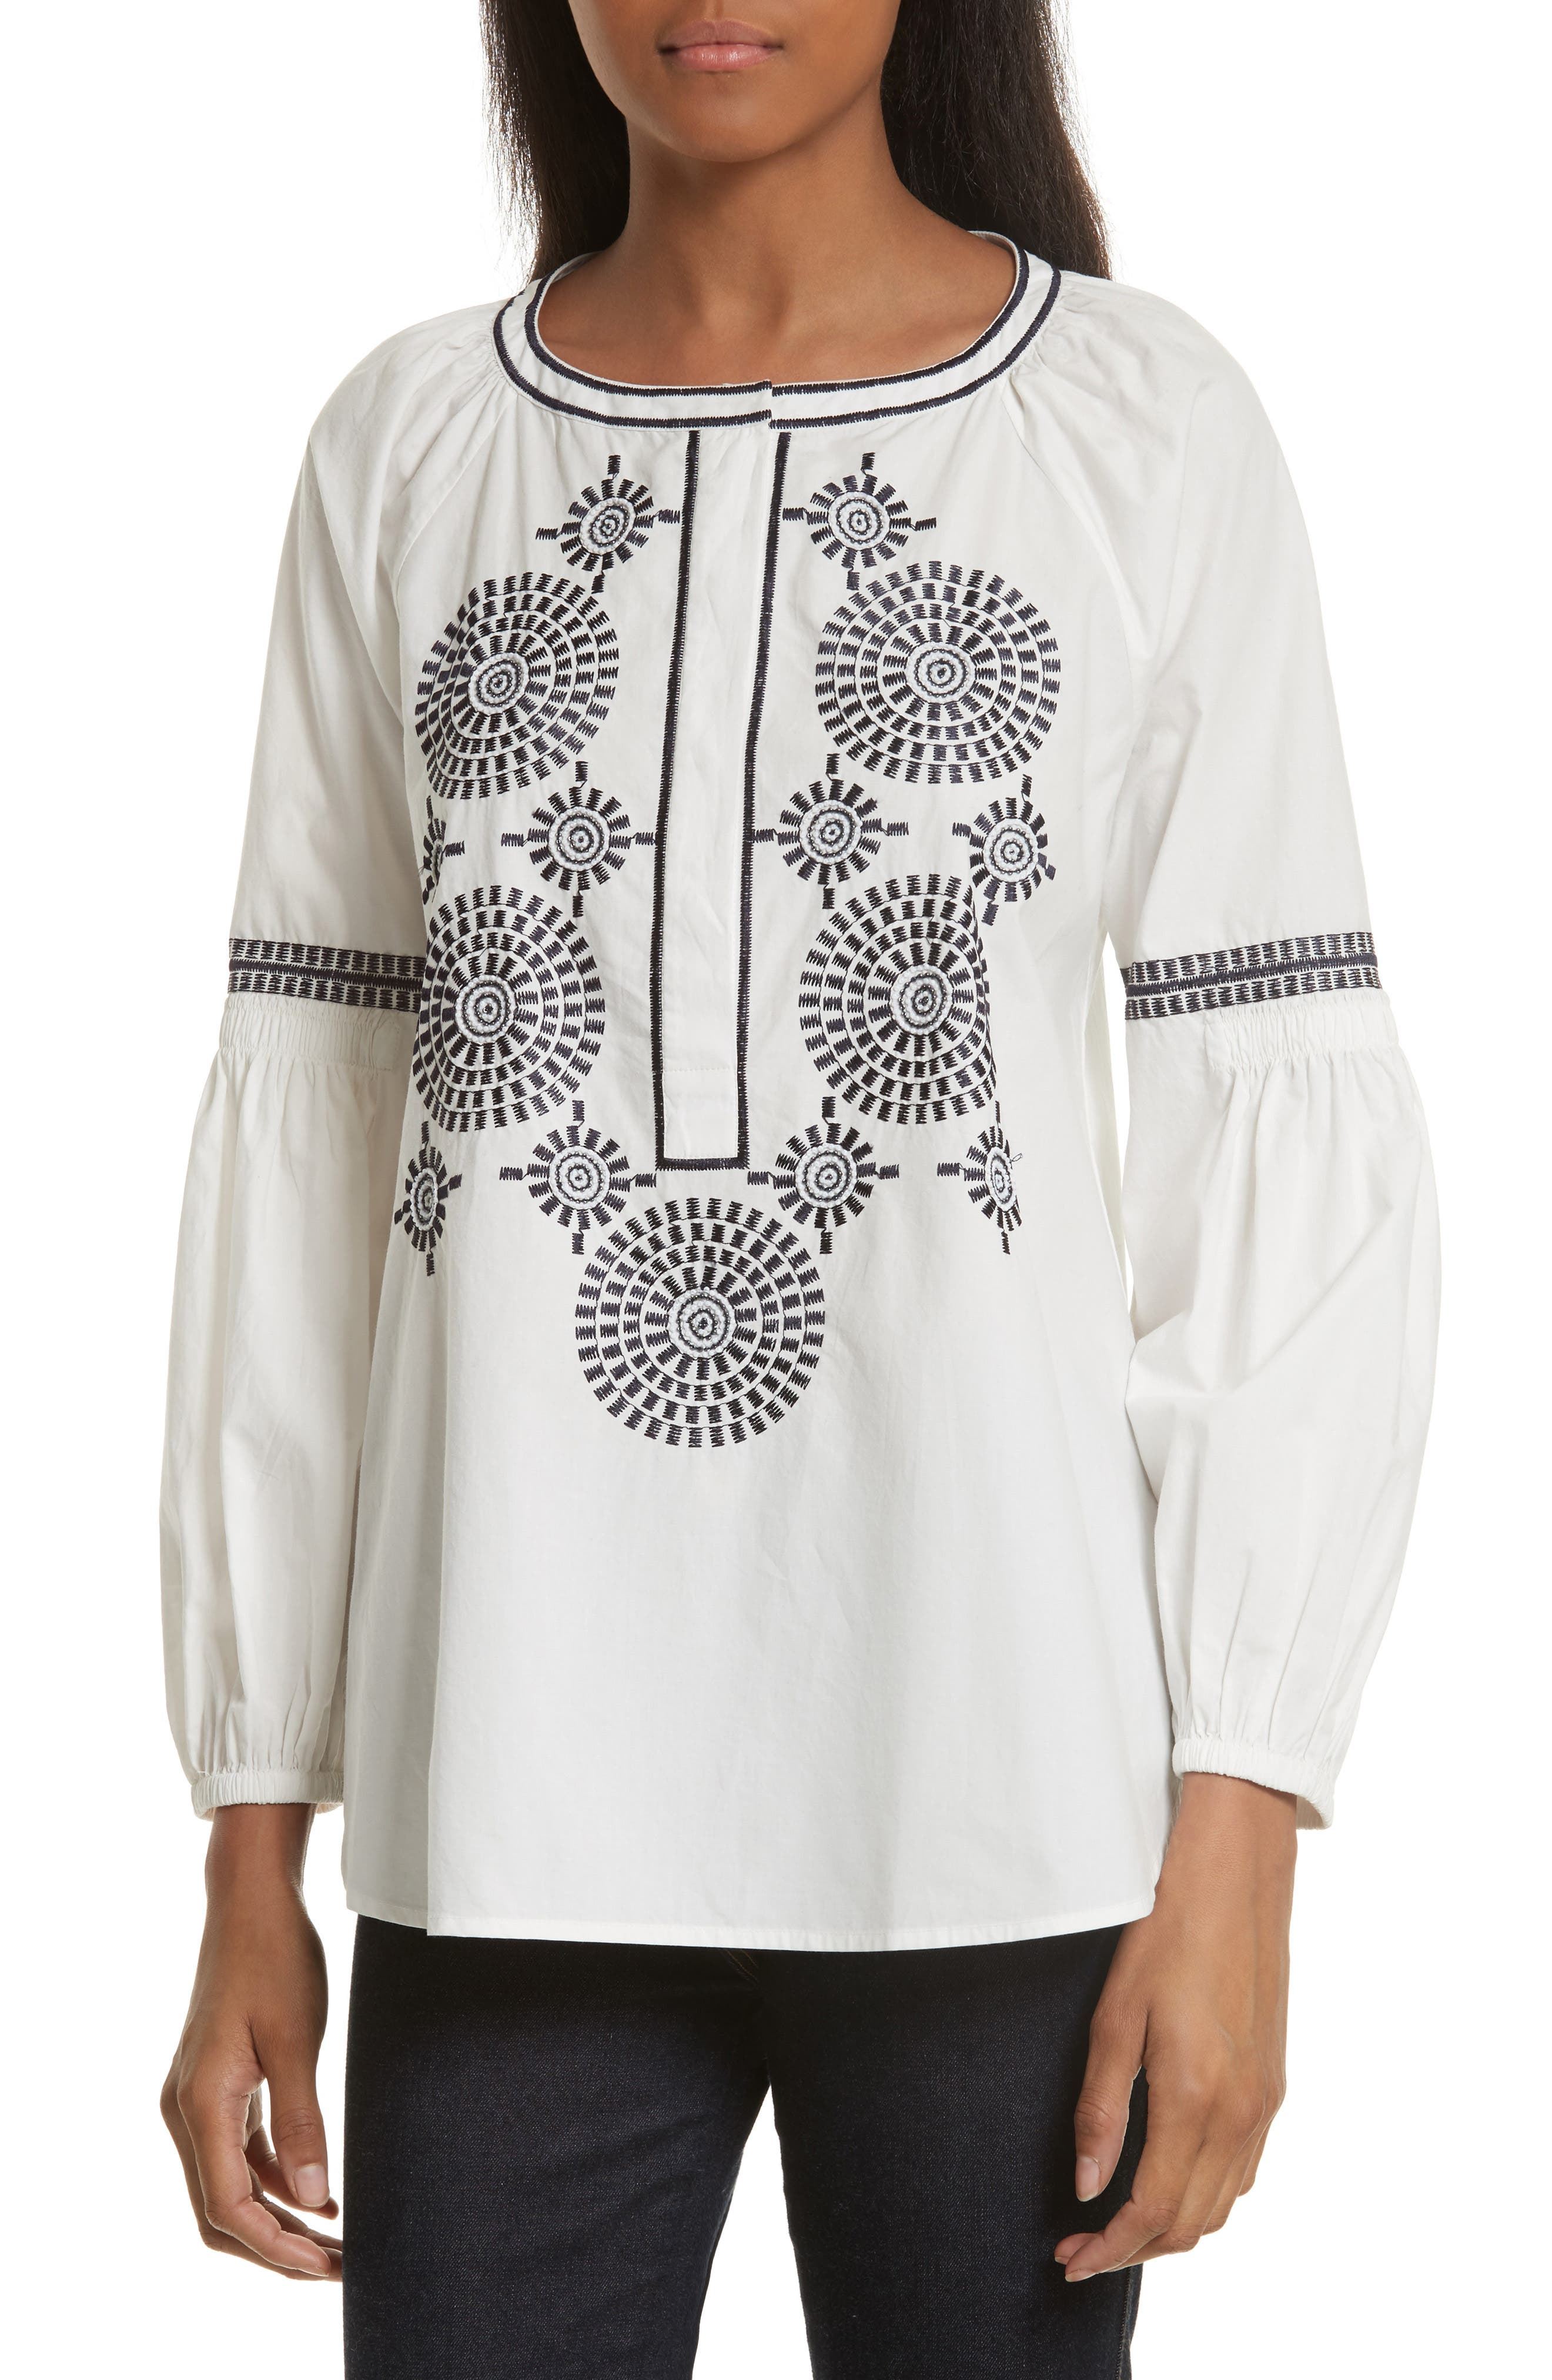 Tory Burch Aubrey Embroidered Peasant Top